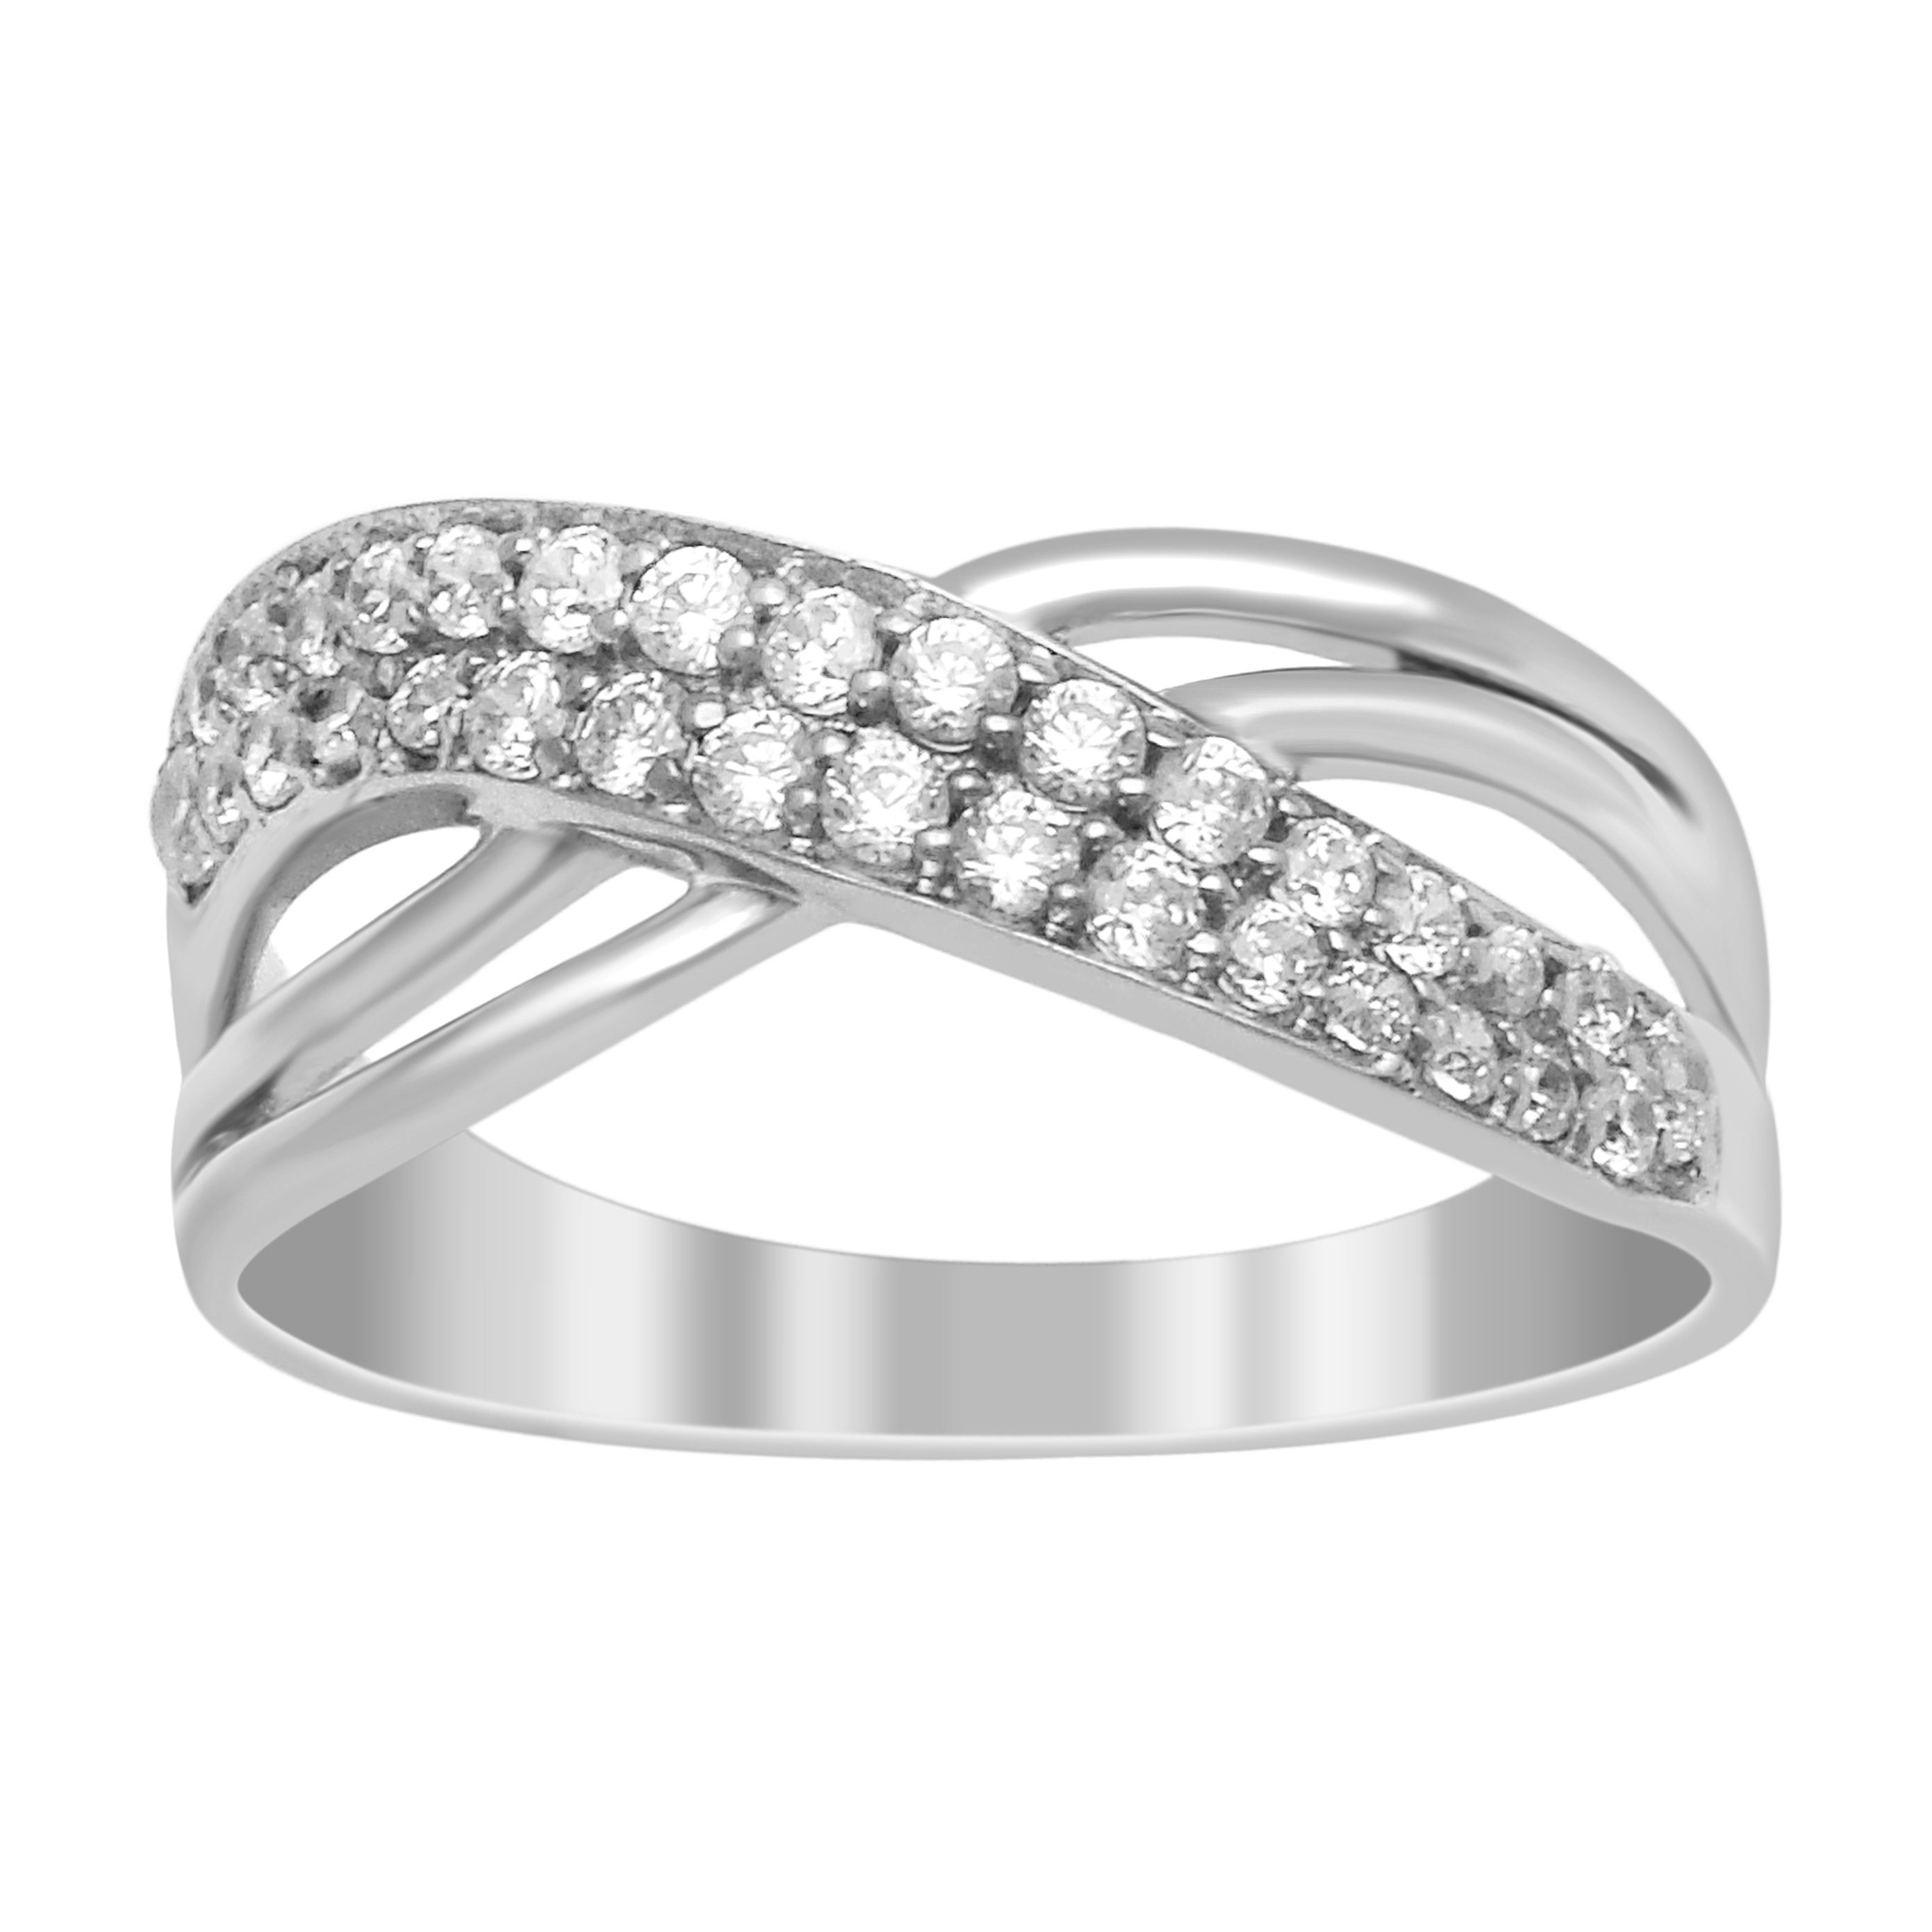 Stackable 925 Sterling Silver Three Shank White Simulant Diamond Women Ring